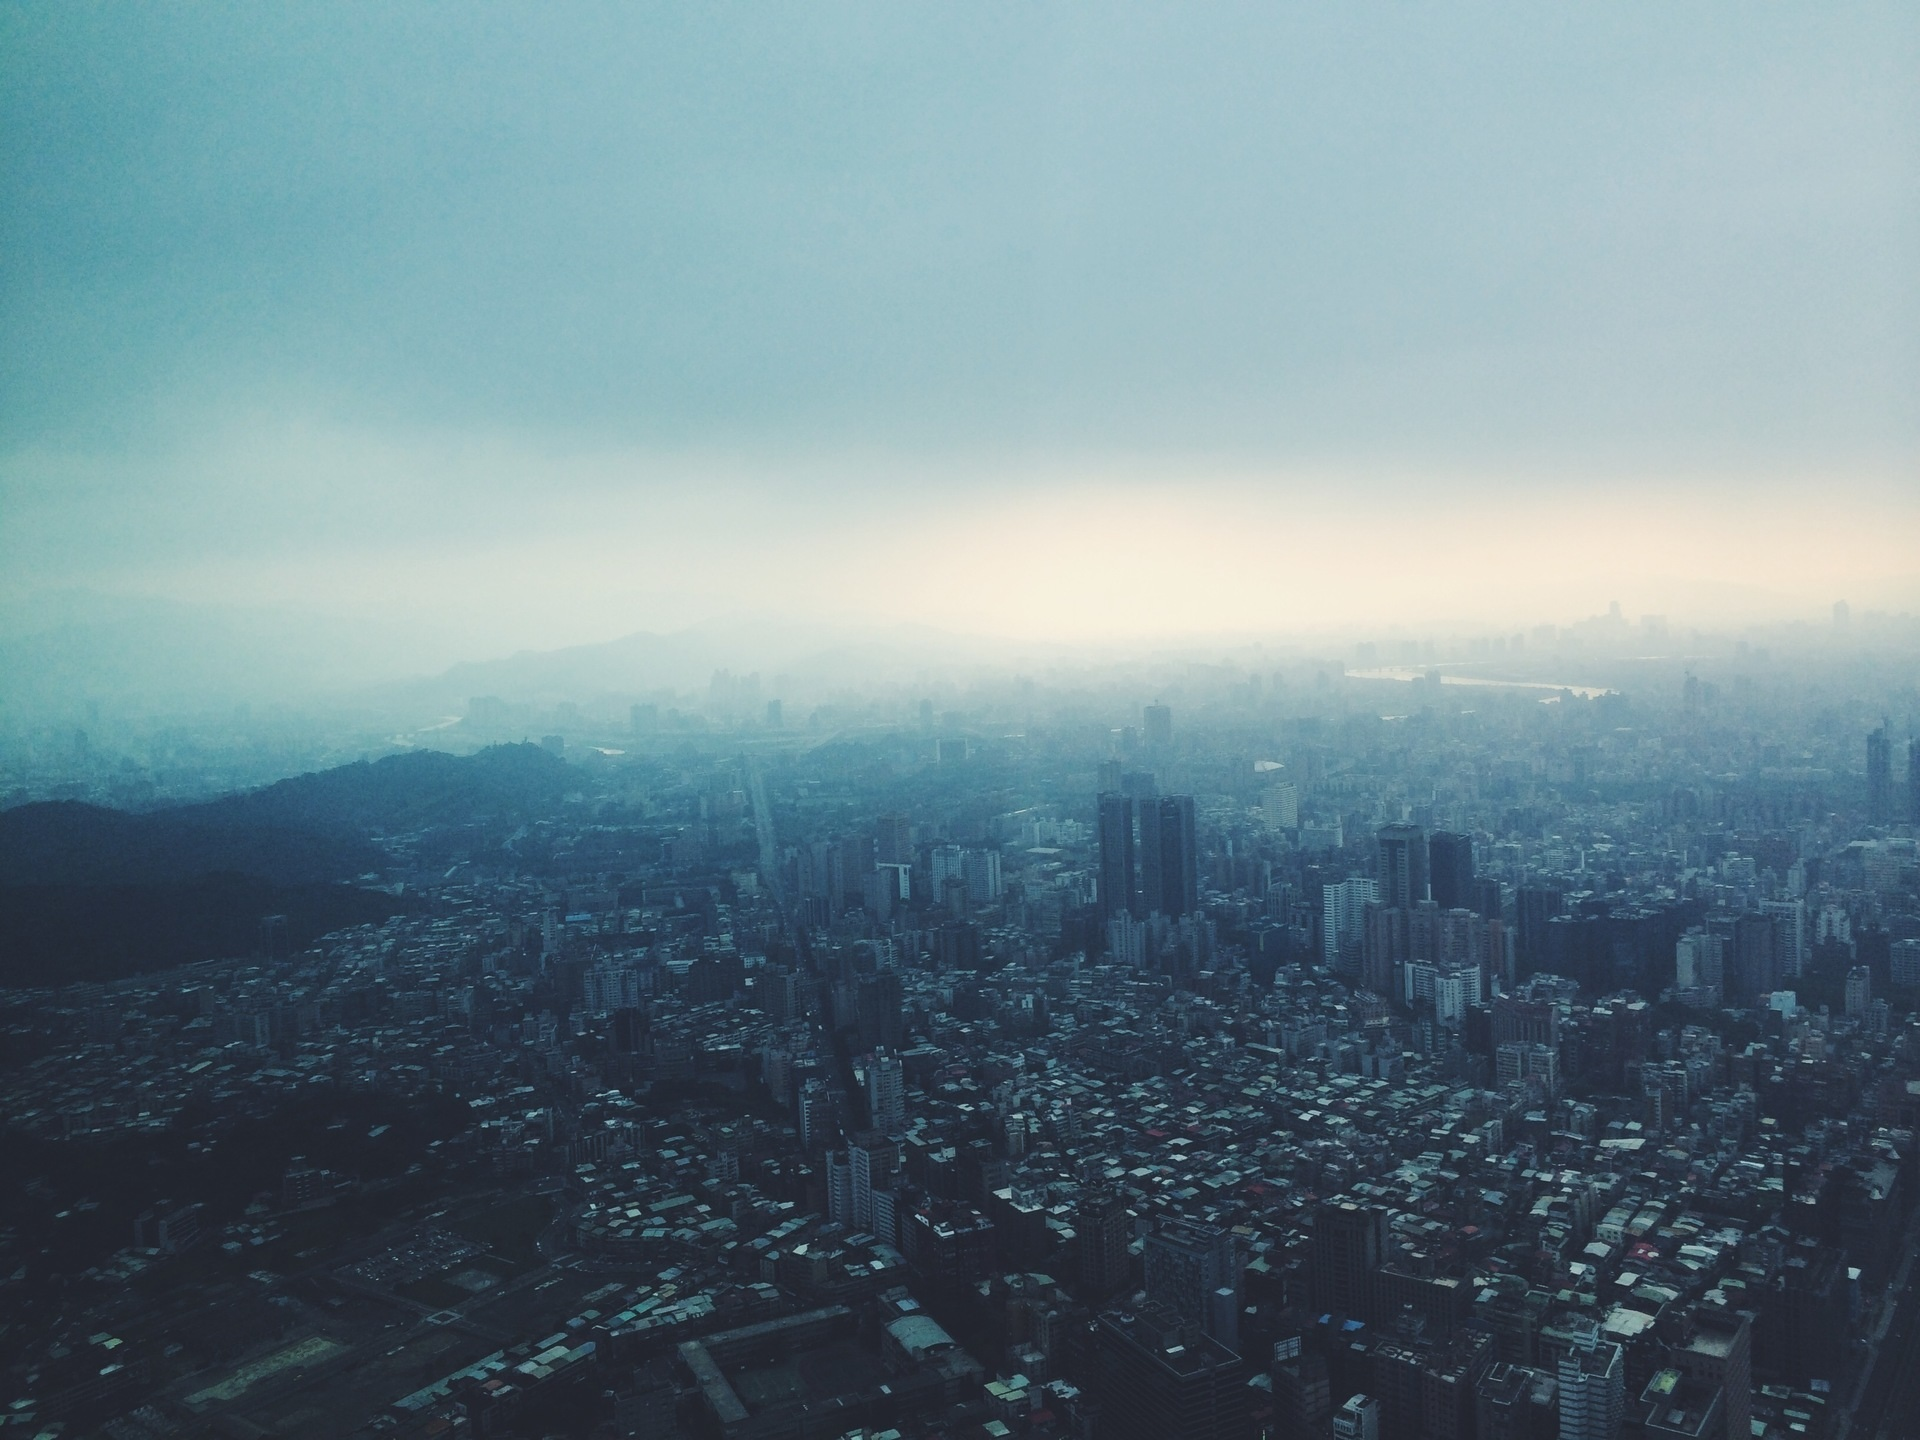 City View, Buildings, City, Fog, Roads, HQ Photo